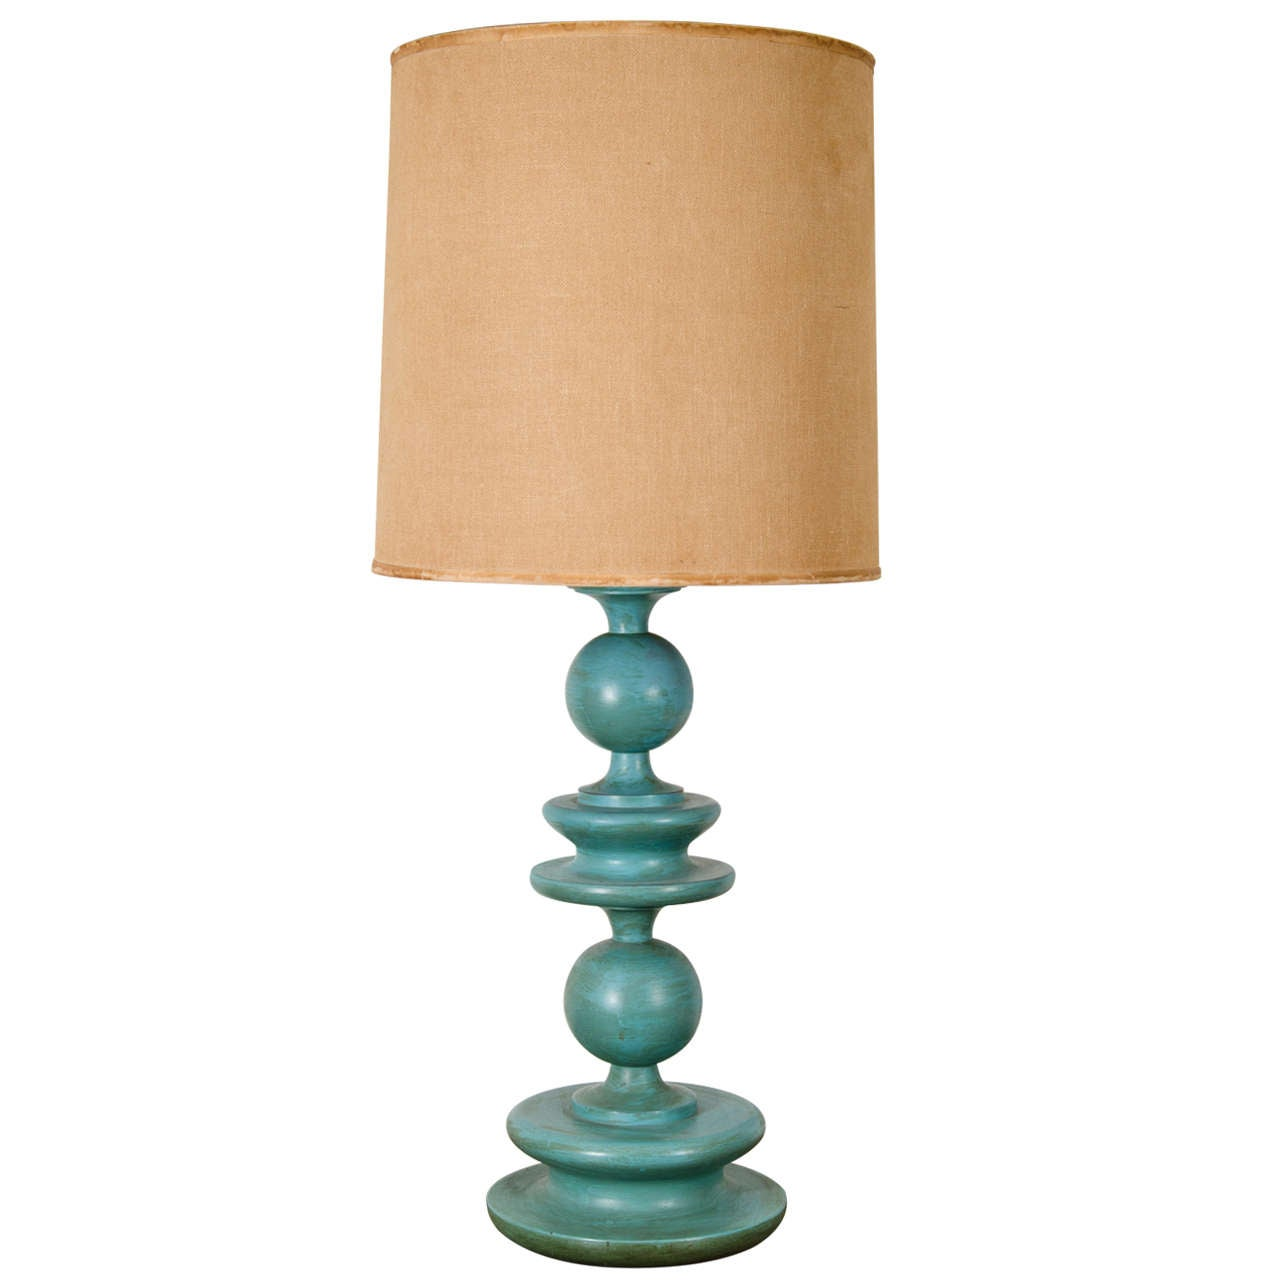 1950 39 S Wooden Lamp With Original Turquoise Paint At 1stdibs